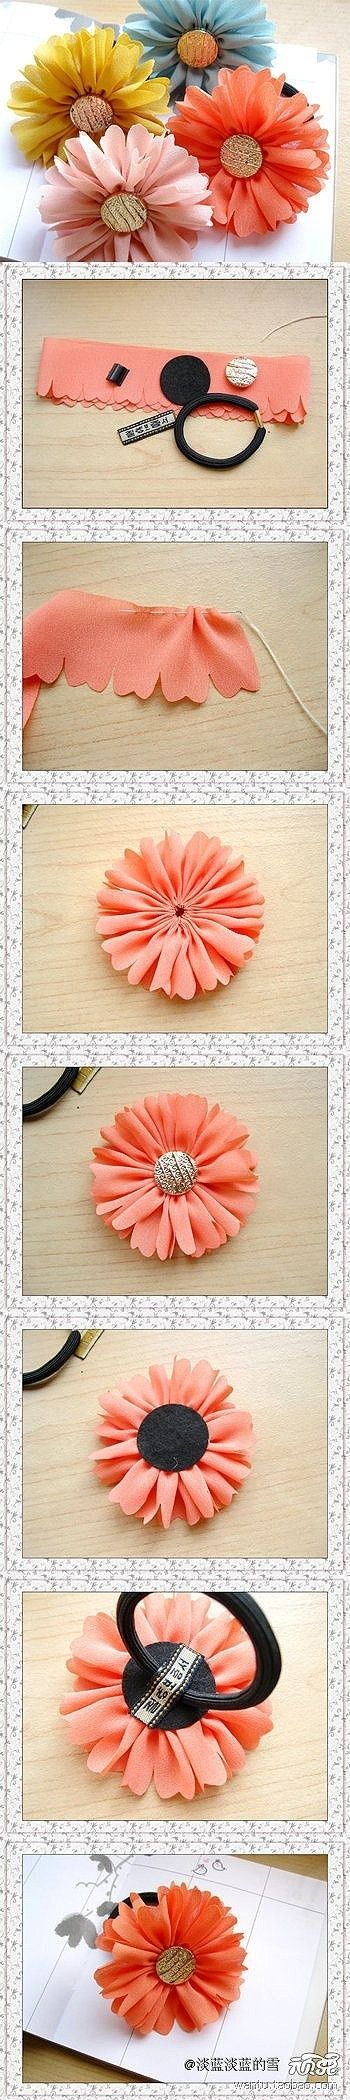 DIY Flower Ponytail Holders